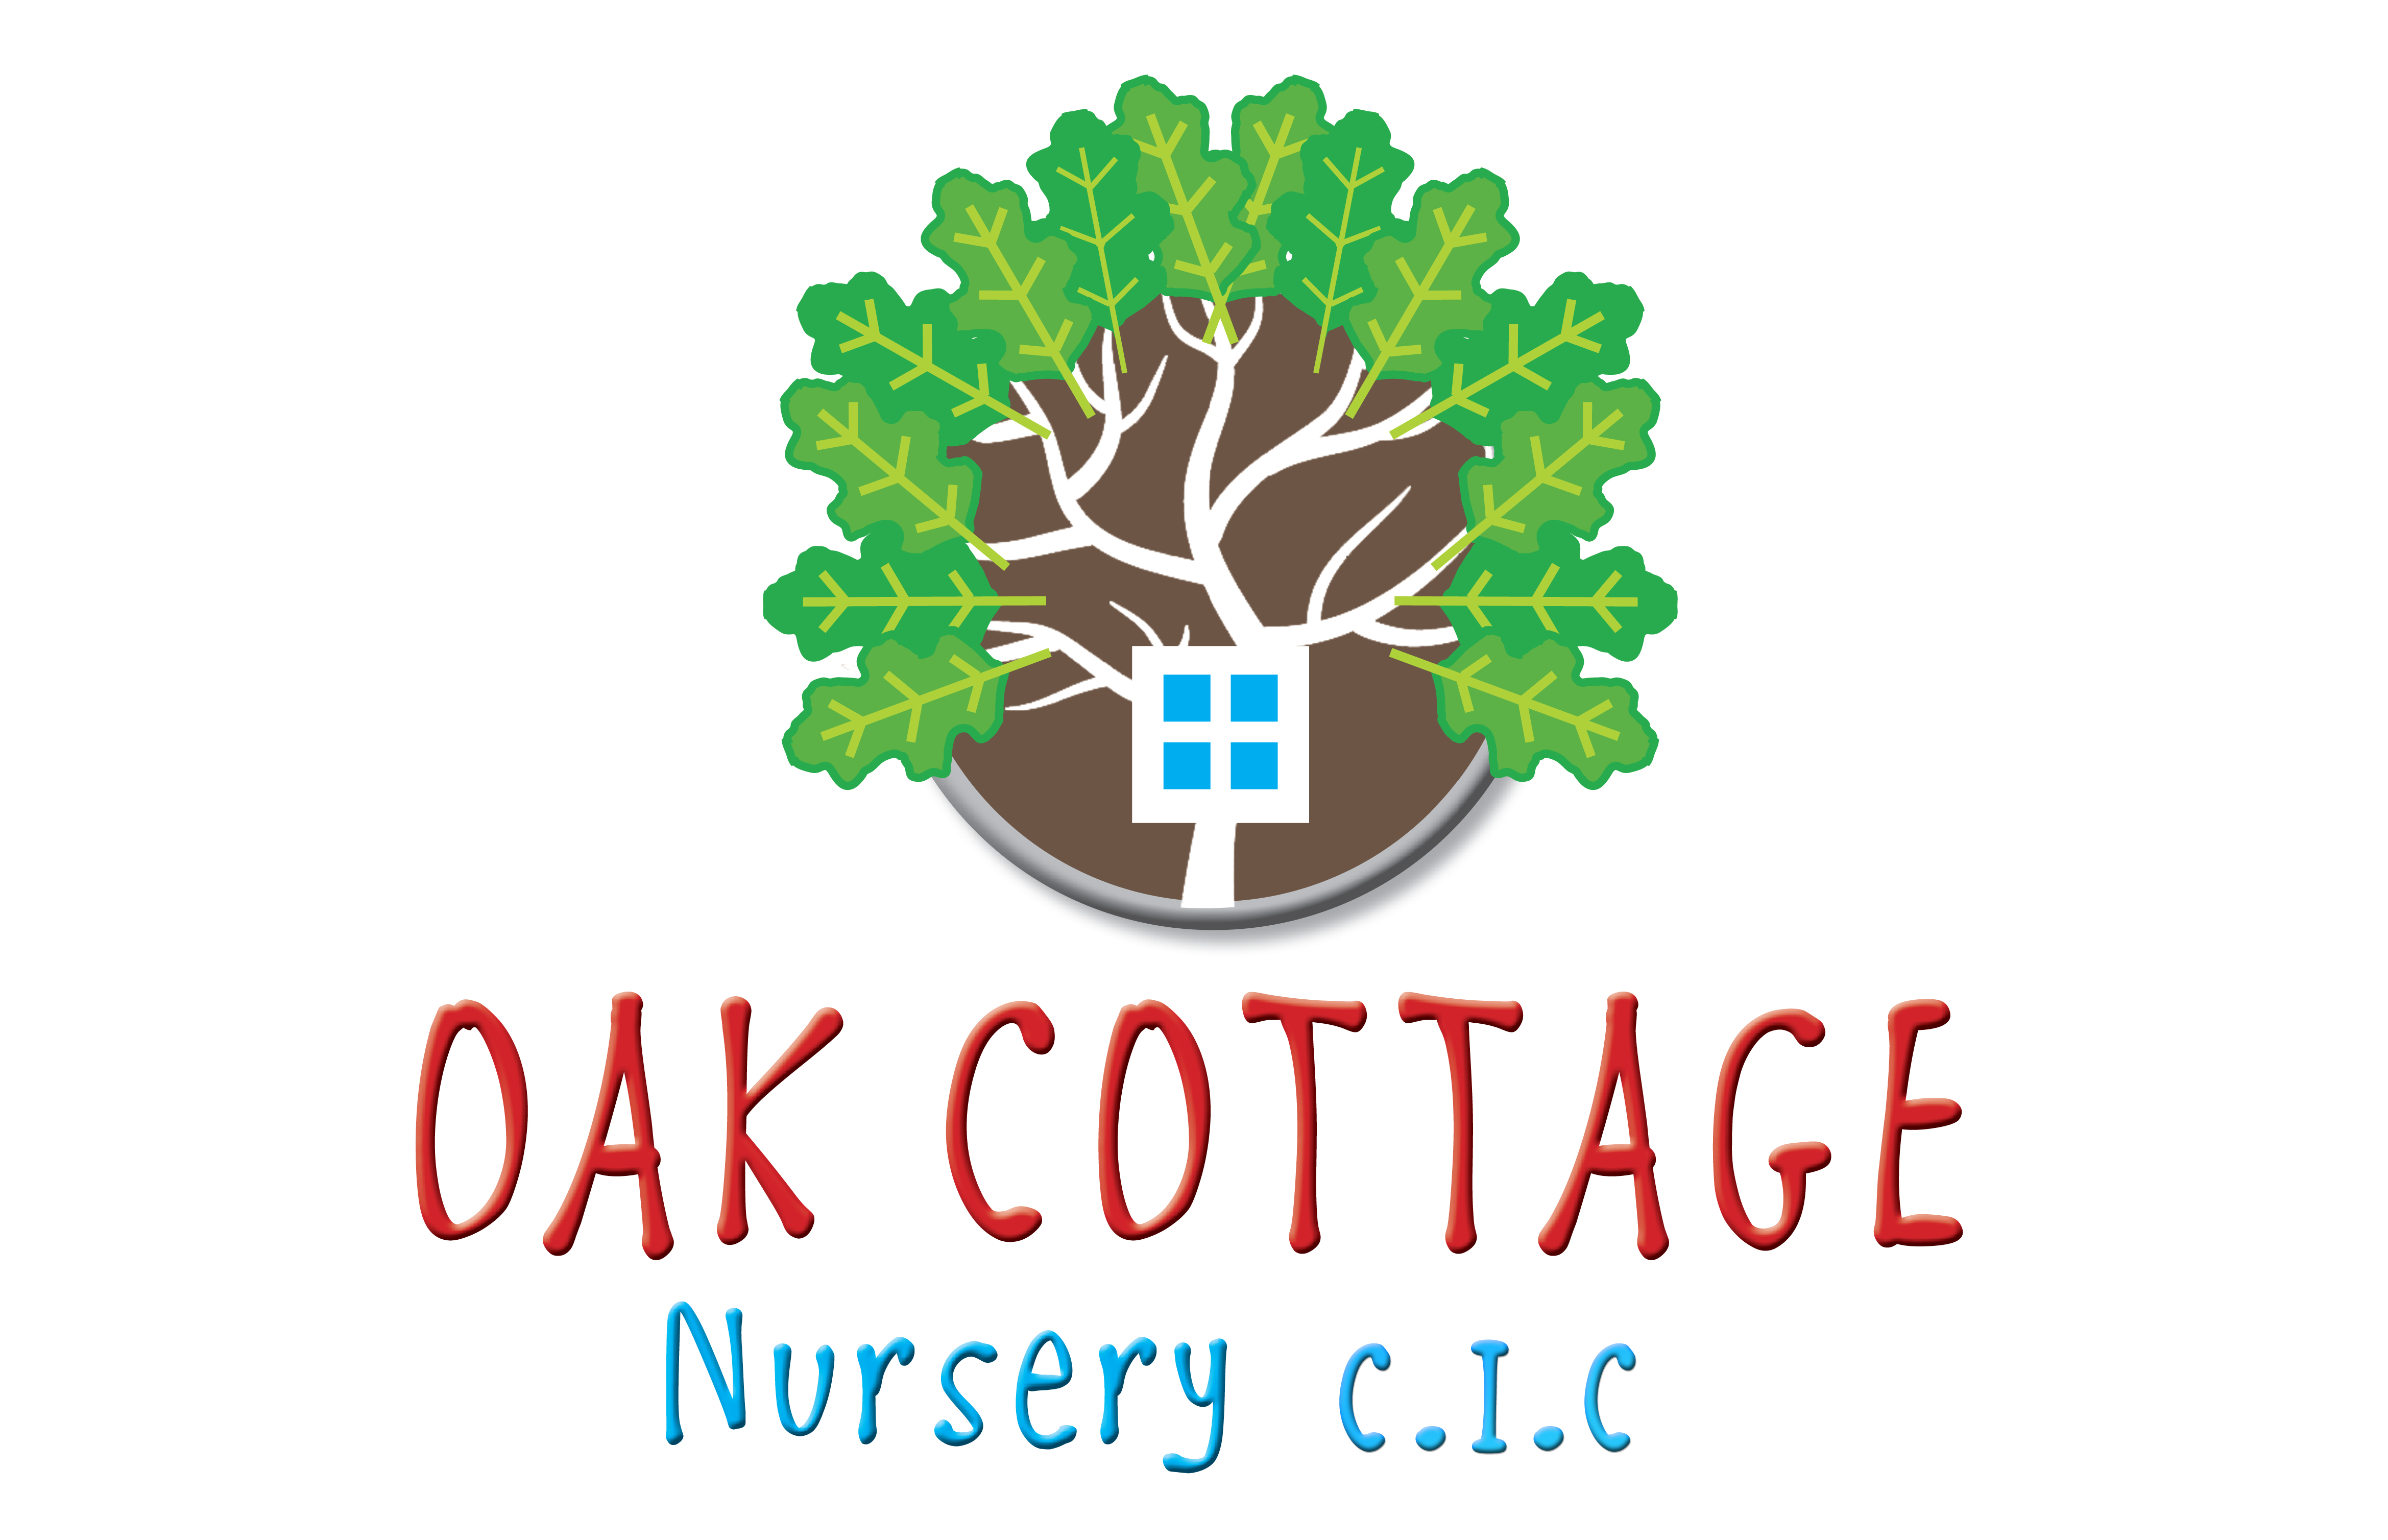 Oak Cottage Nursery CIC